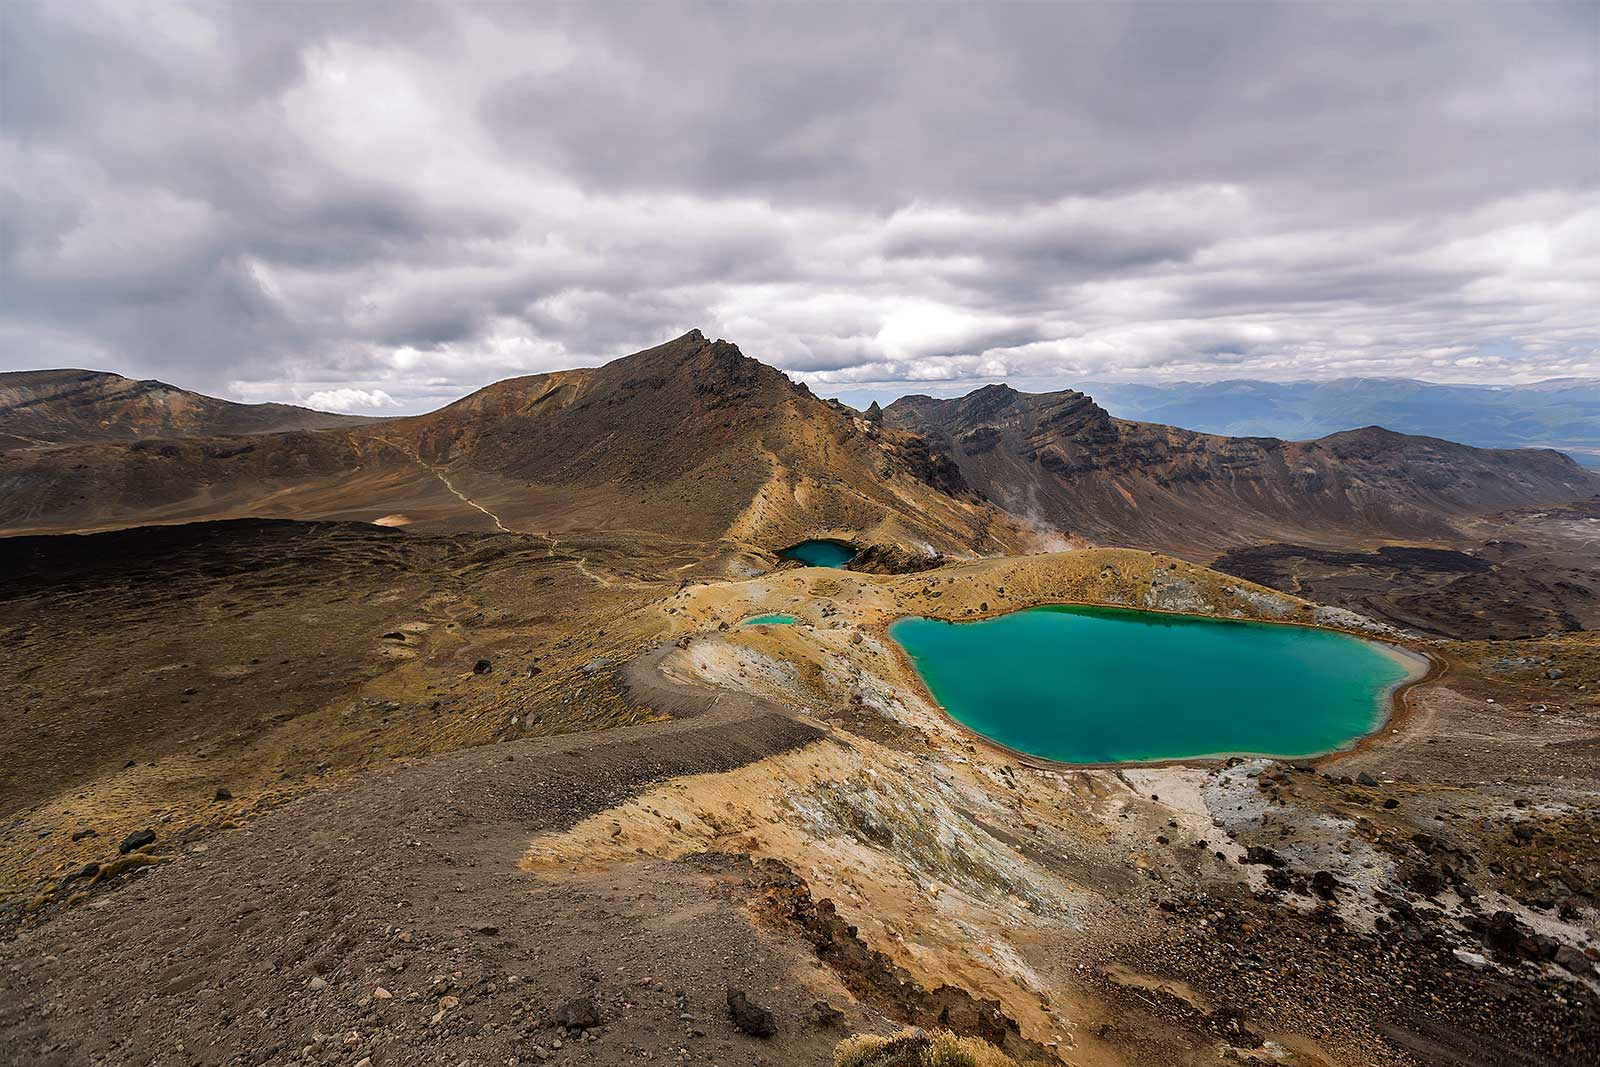 tongariro-alpine-crossing-emeral-lakes-new-zealand-1